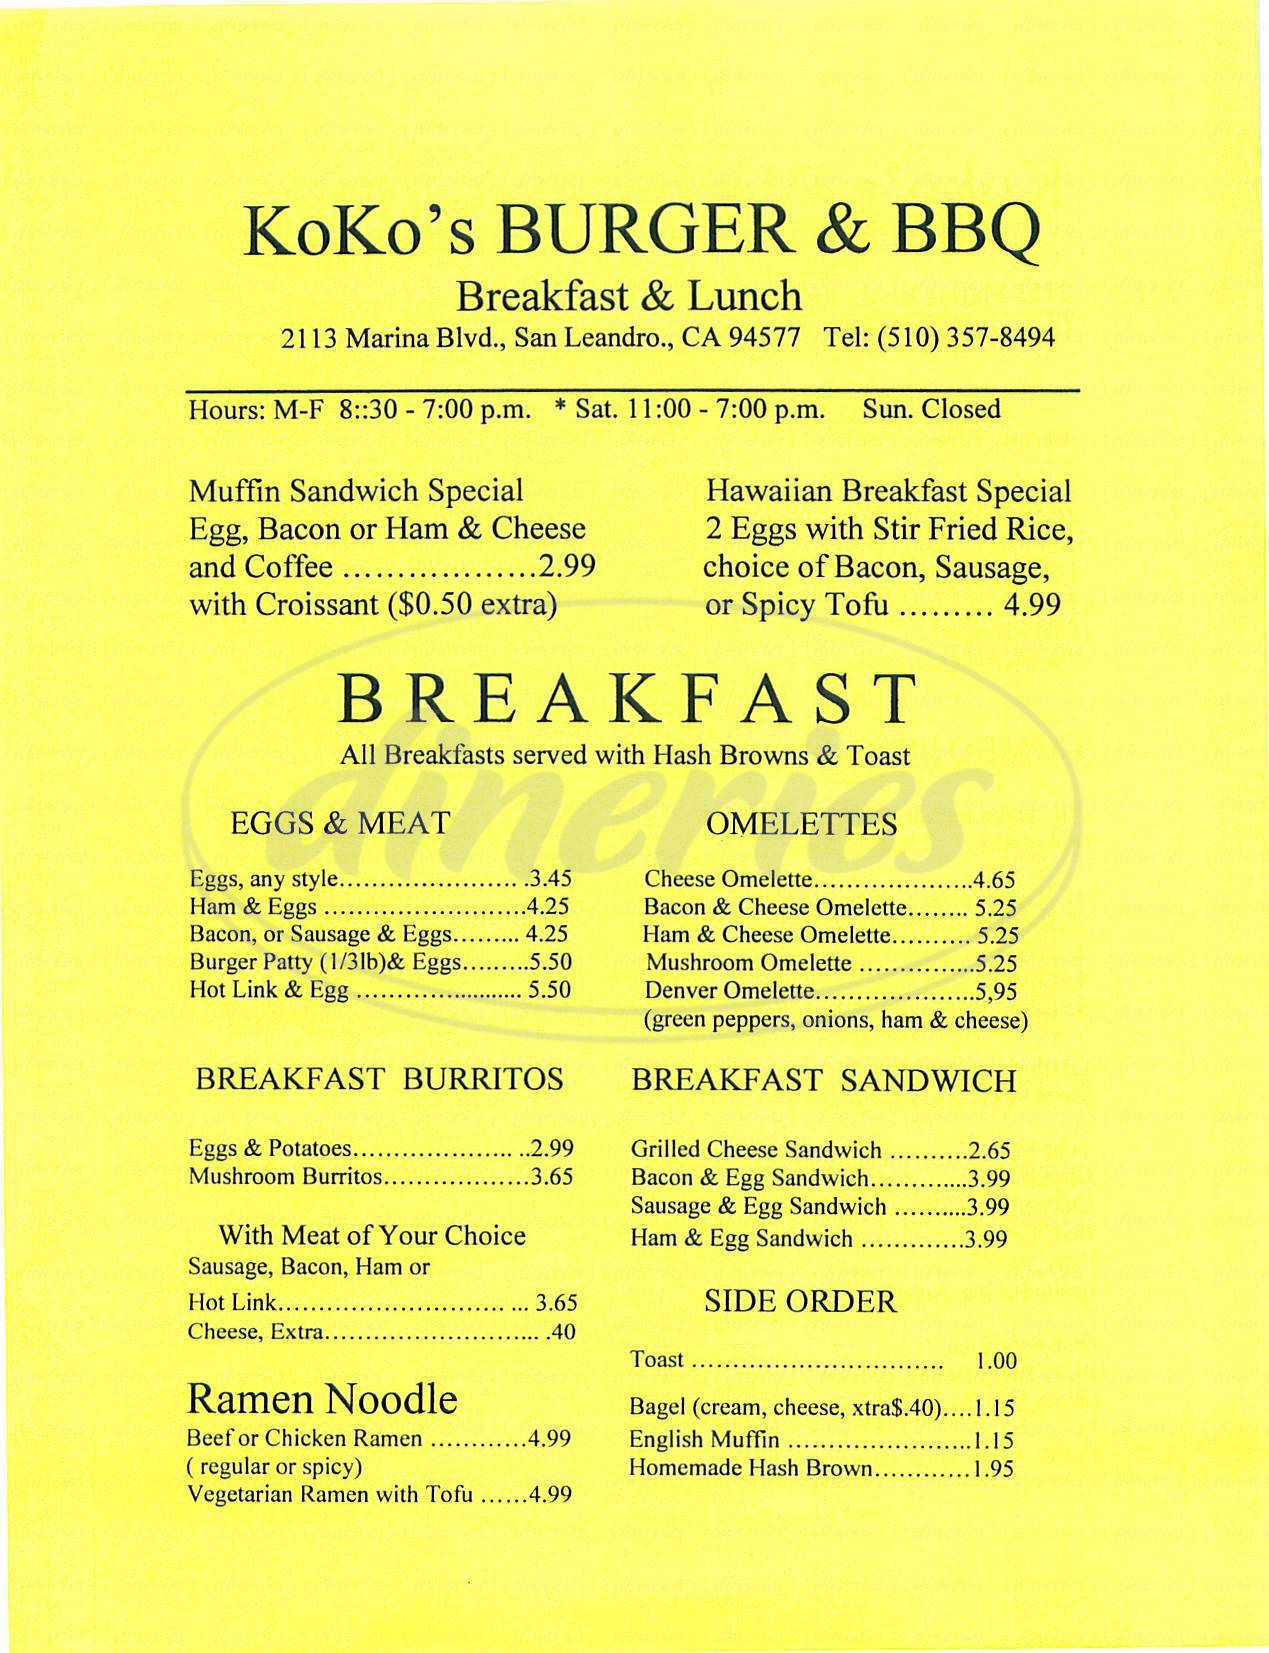 menu for KoKo's Burger & BBQ